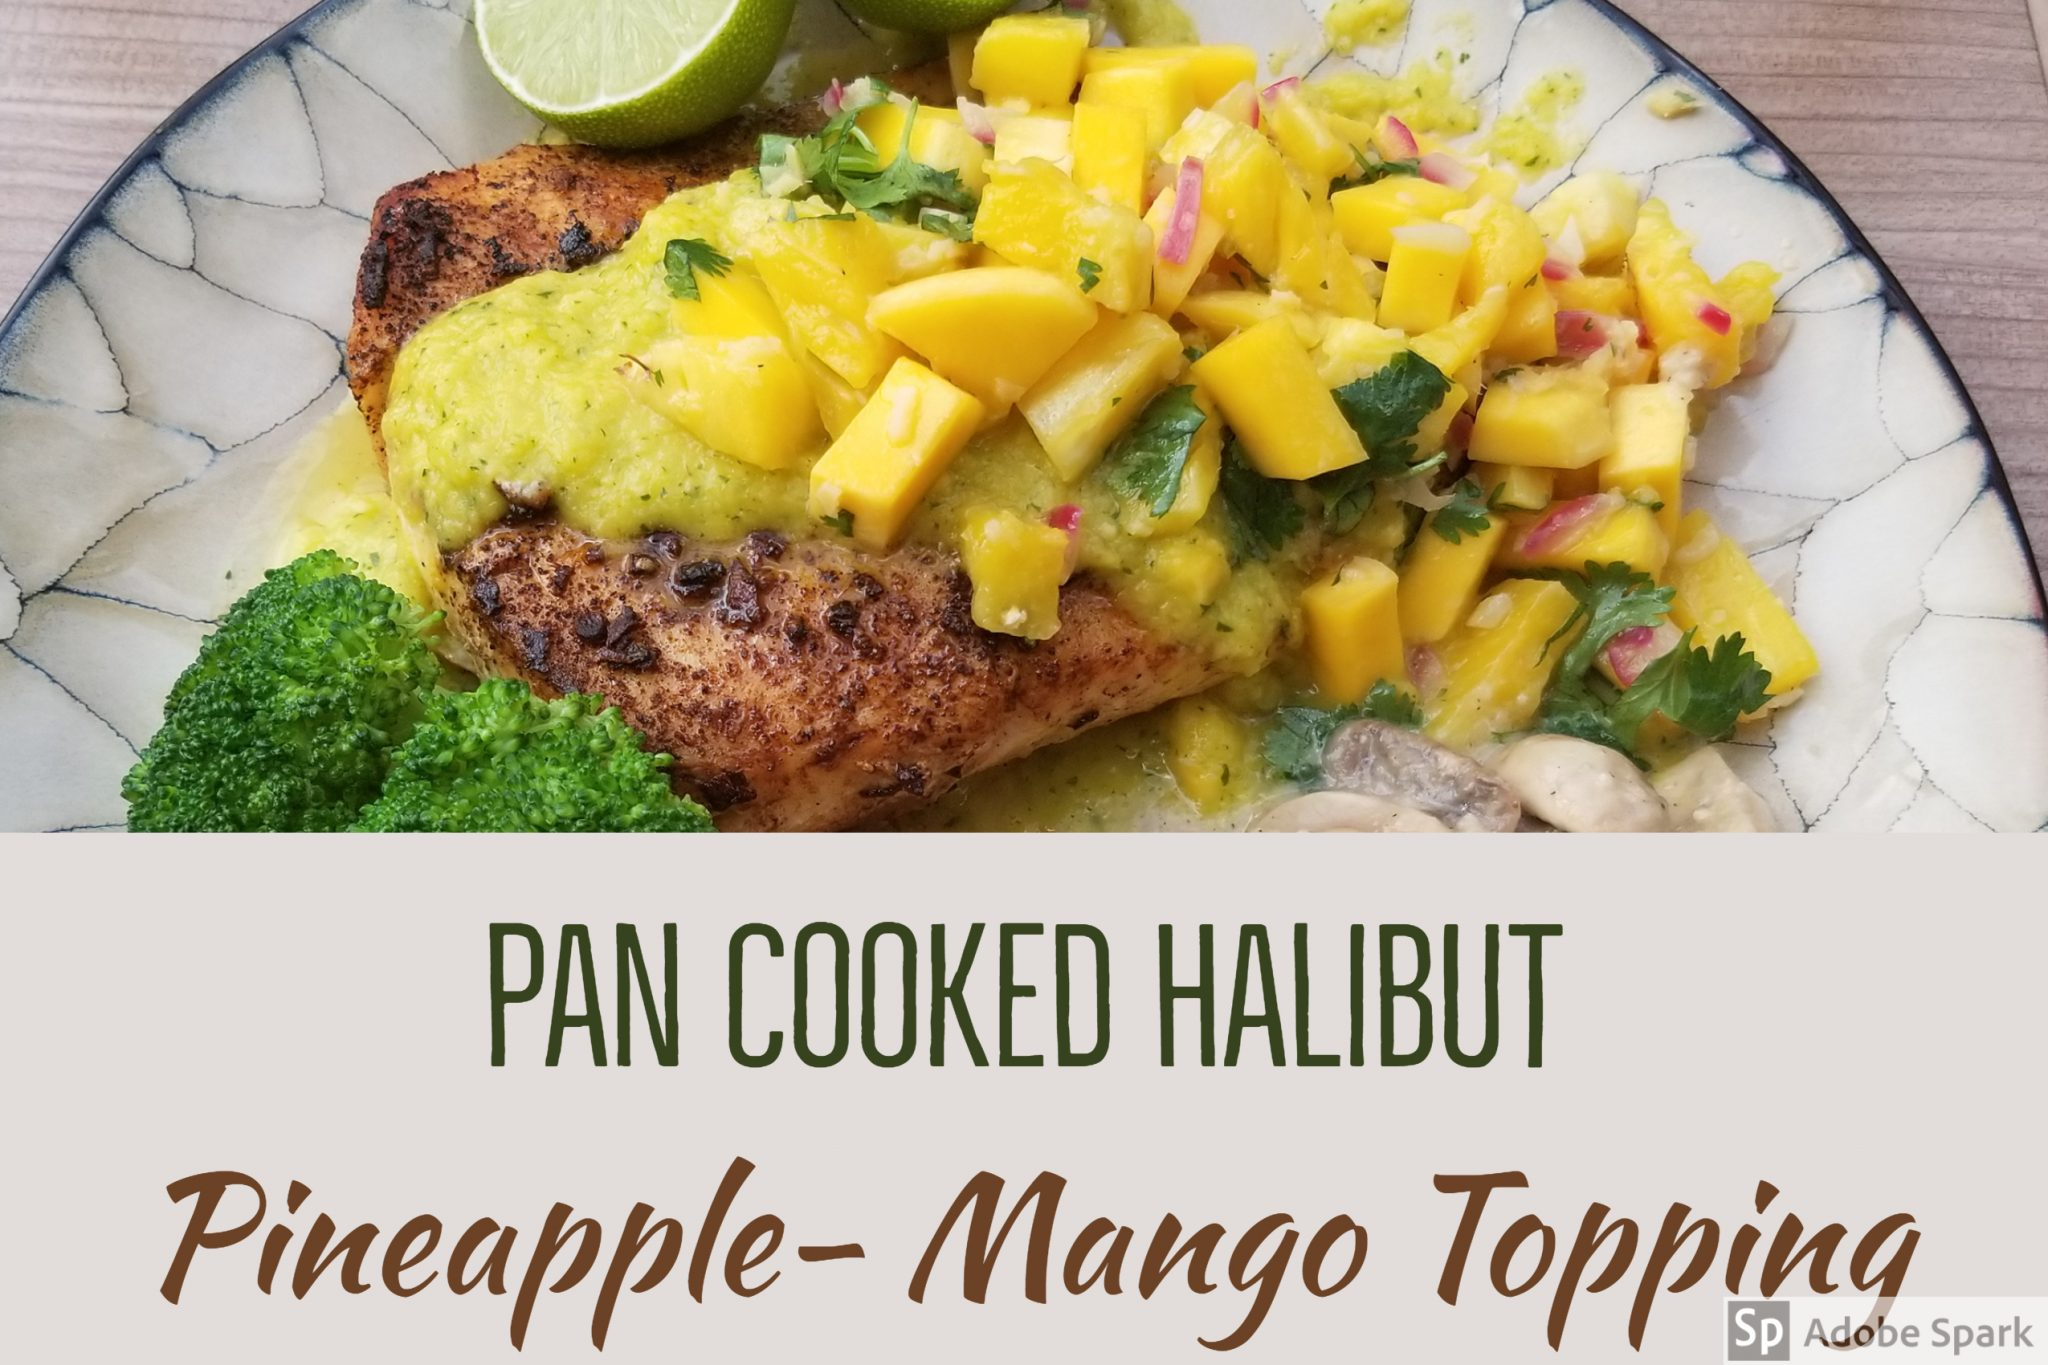 Pan Cooked Halibut With Pineapple Mango Topping